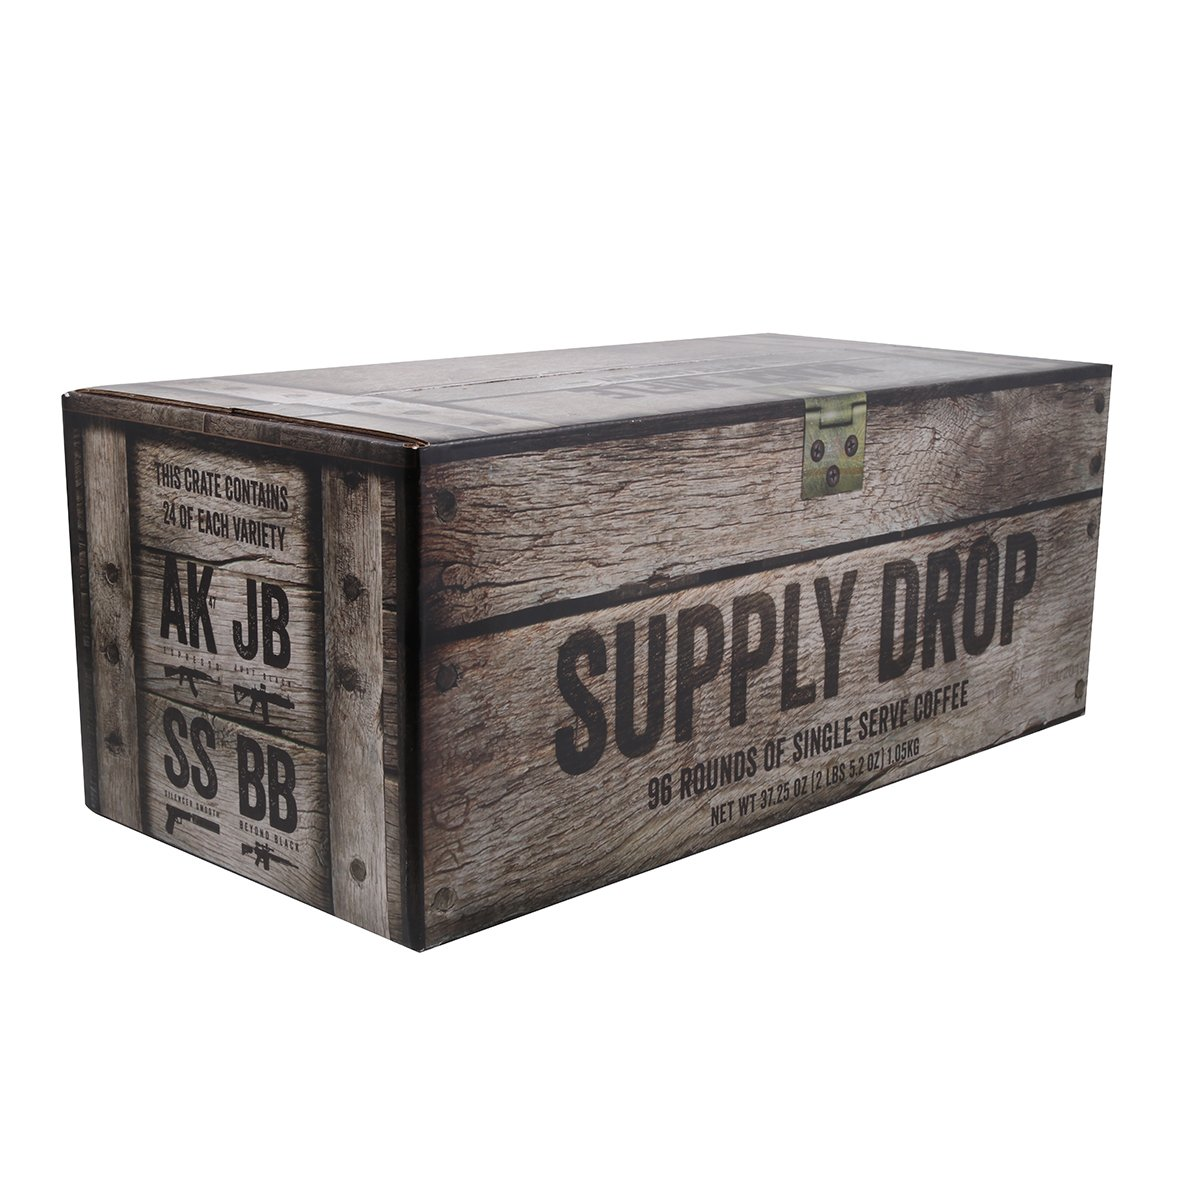 Complete Mission Fuel Kit Coffee Rounds for Single Serve Coffee Brewers (96 Count) by Black Rifle Coffee Company